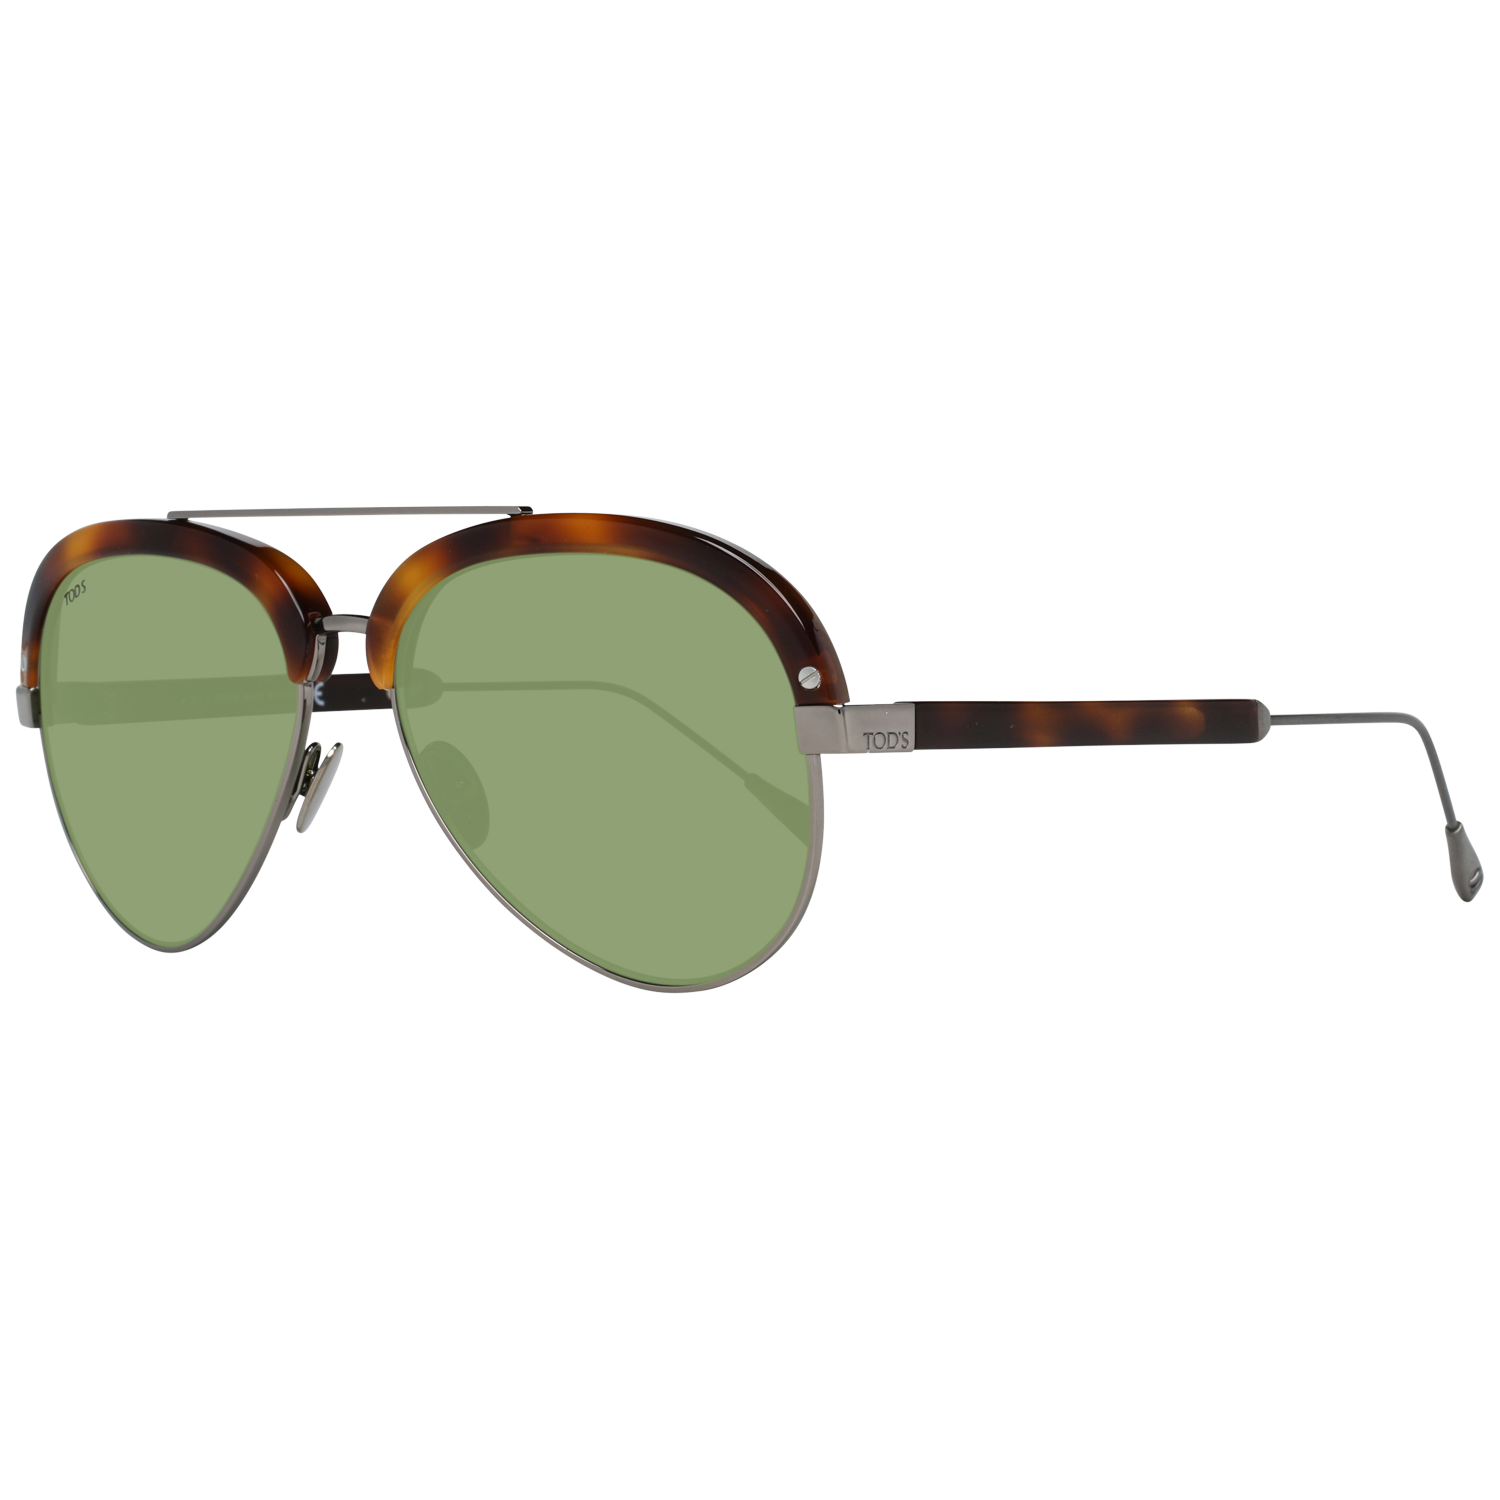 Tods Sunglasses TO0211 53N 56 Brown